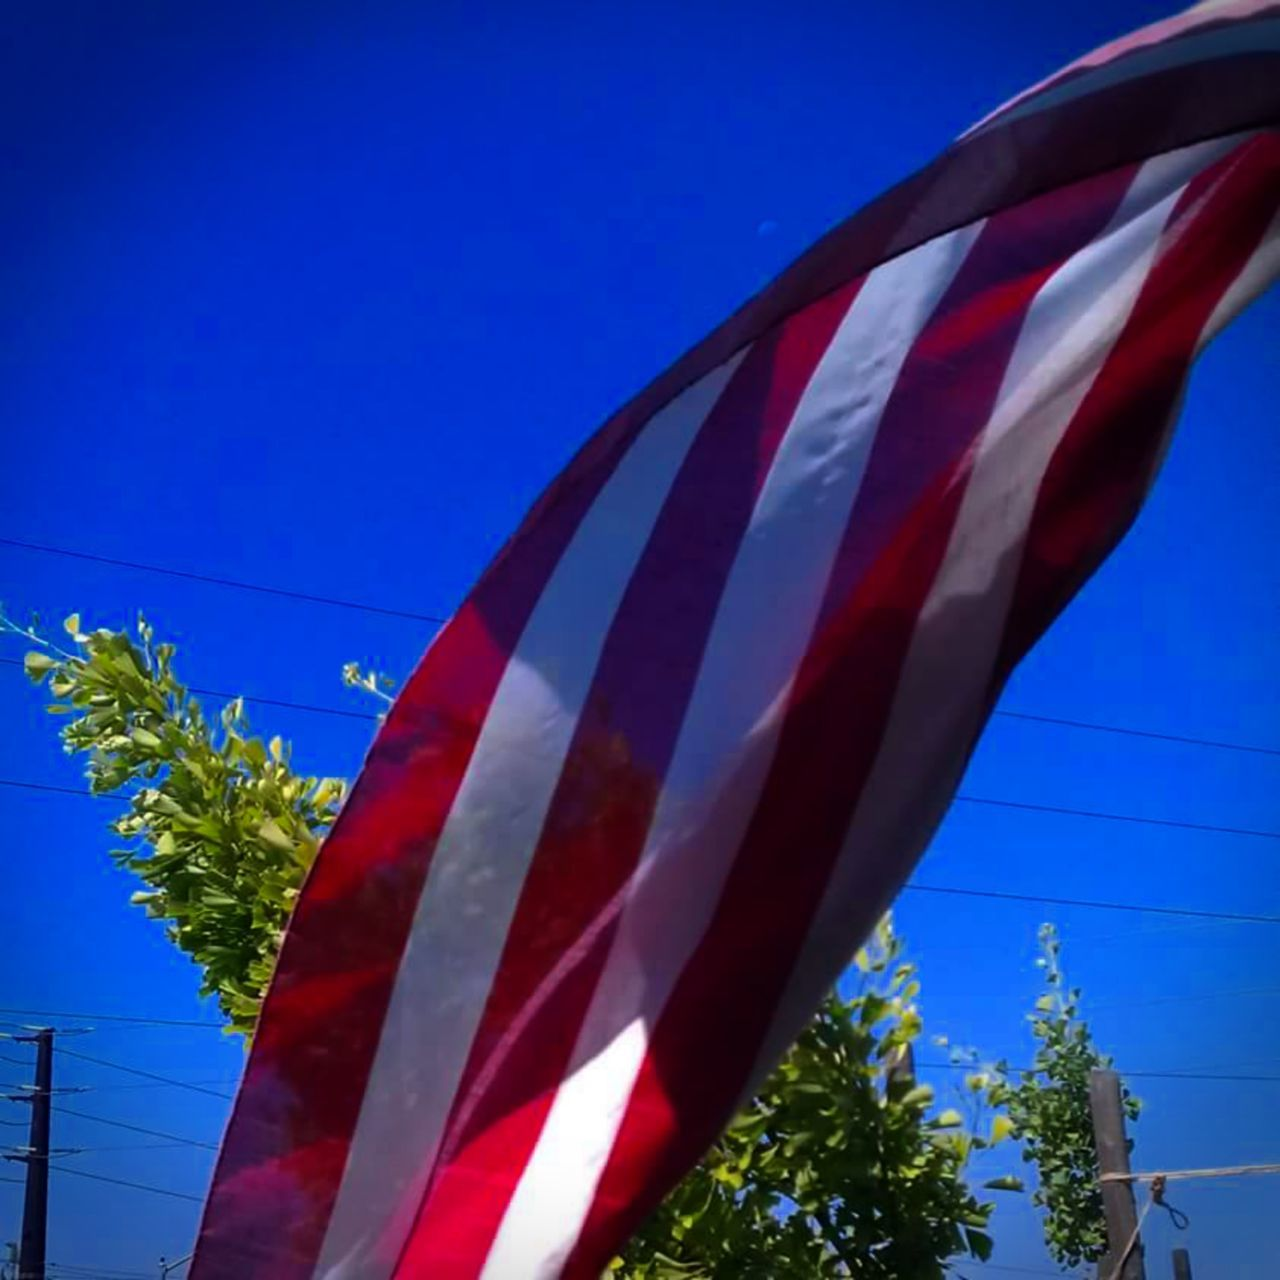 Showcase March Taking Photos American Flag Colour Of Life Blue Color Blue Sky Color Photography No People, Outdoors Riverside California Home Is Where The Art Is Beautiful Day Red White And Blue Moon Daytime Moon Flags In The Wind  Color Palette Eyemphoto